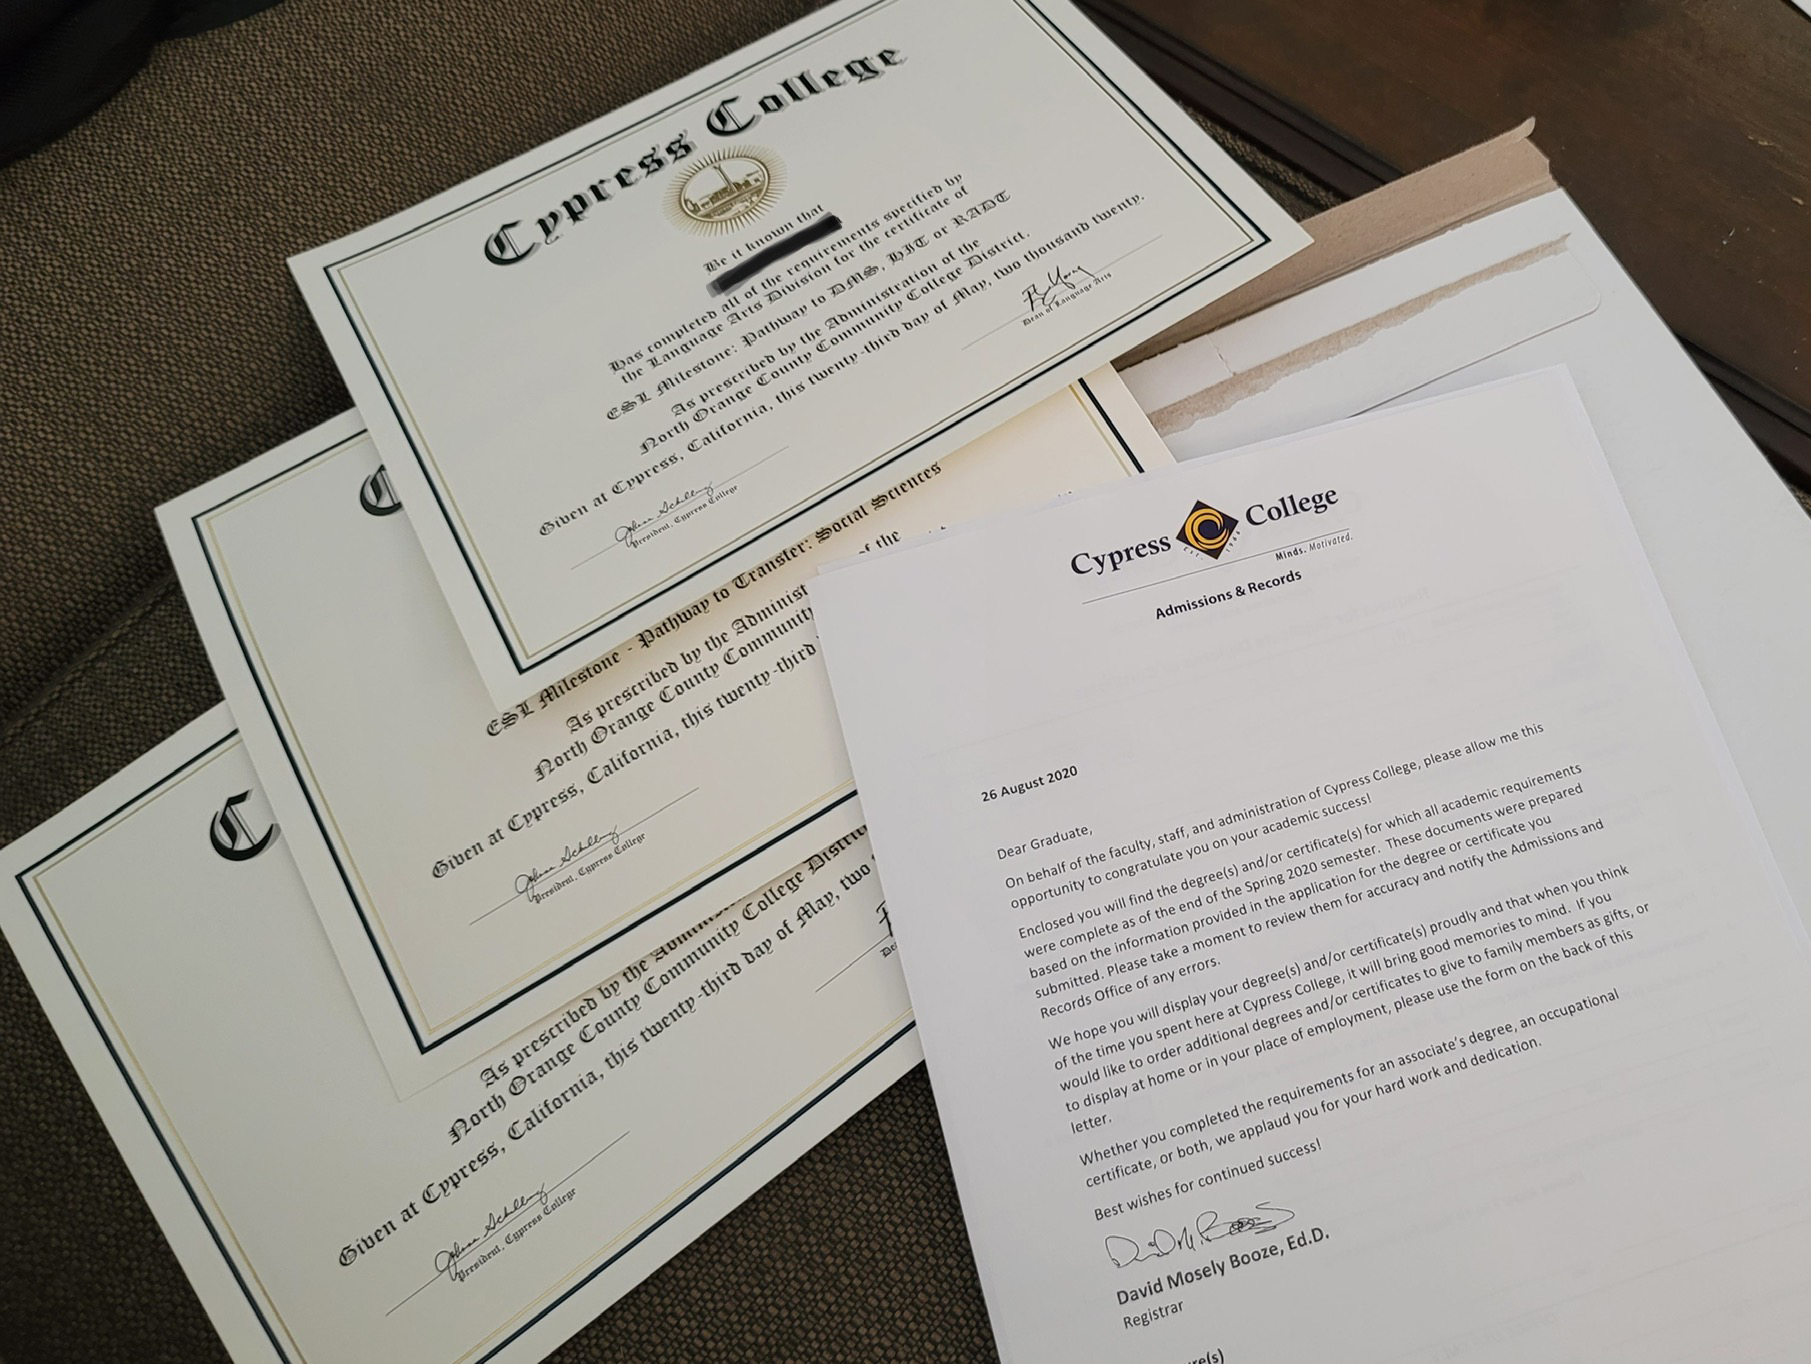 ESL certificates and letter